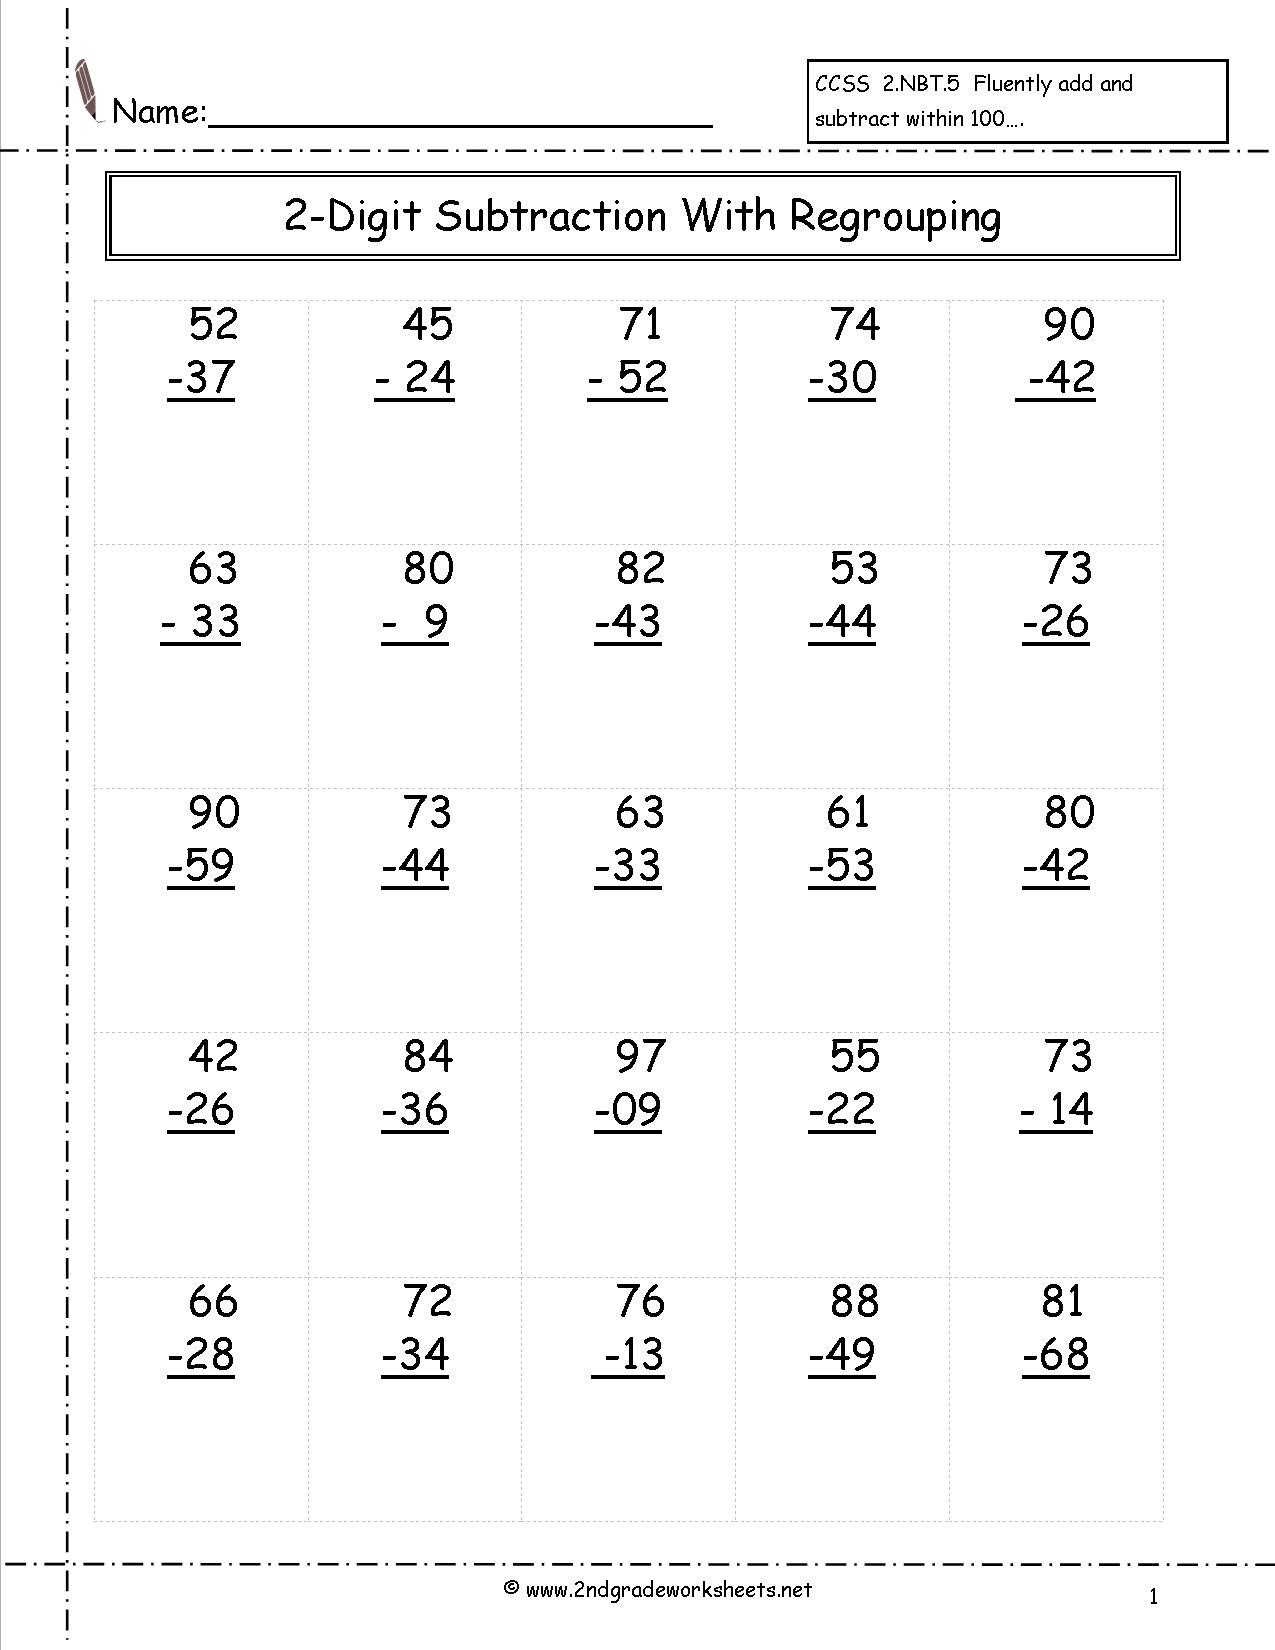 hight resolution of 4 Free Math Worksheets First Grade 1 Subtraction Subtract 1 Digit From 2  Digit No Regrouping - apocalomegaproductions.com